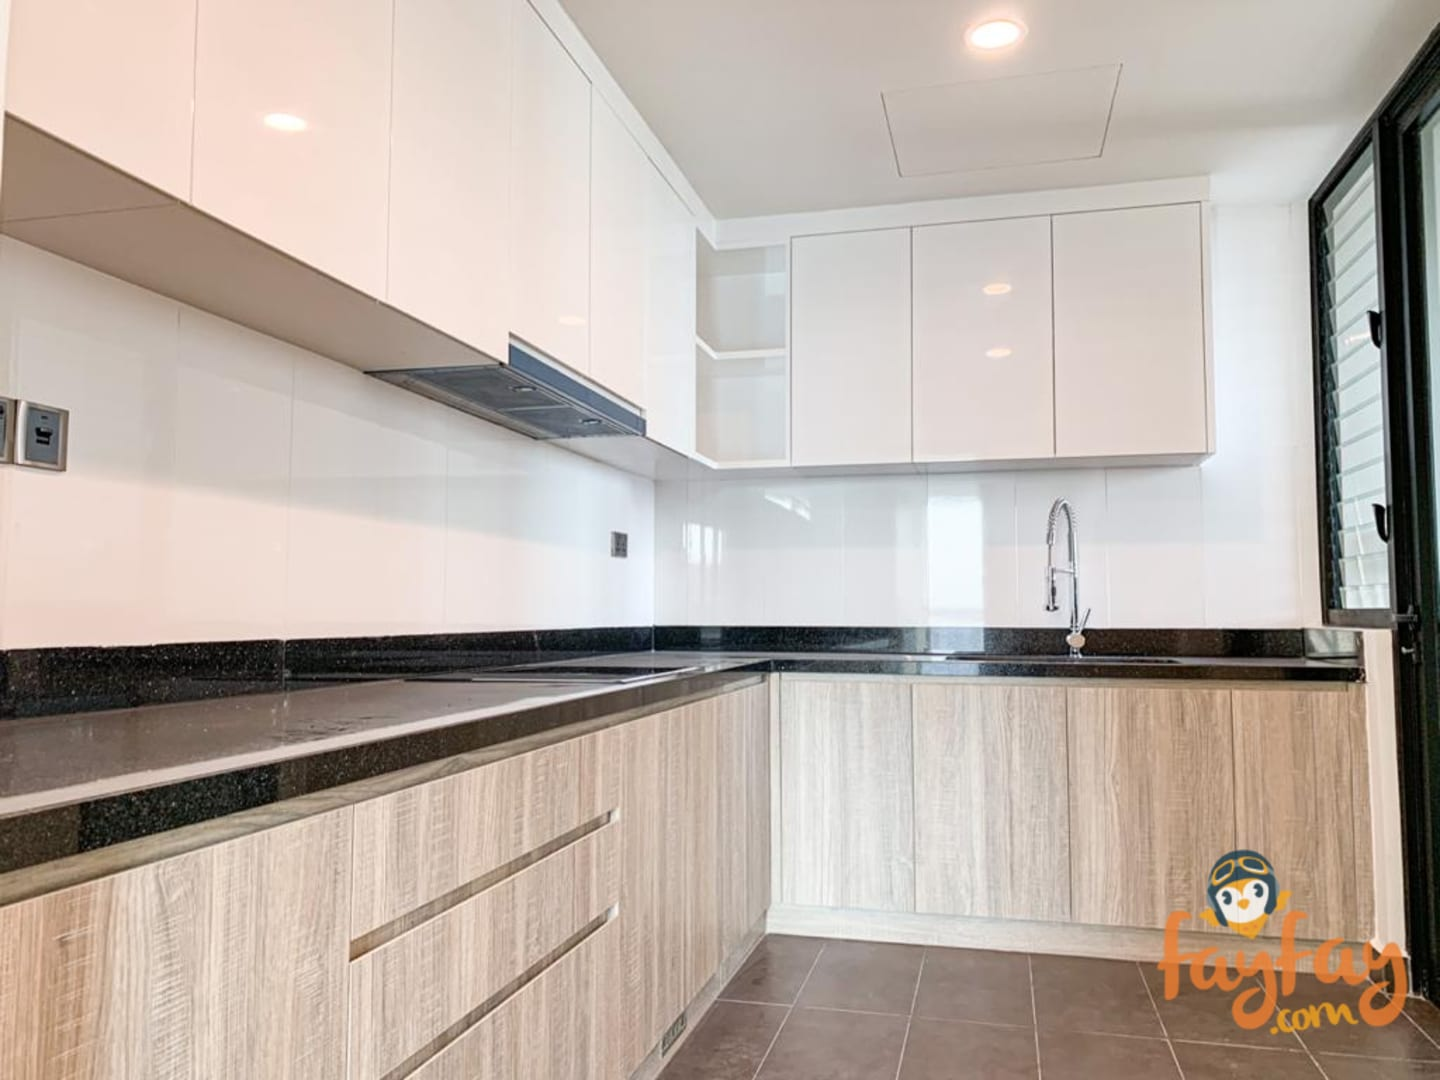 [RENT] FELIZ EN VISTA - SIMPLEX UNFURNISHED 2BR - banner